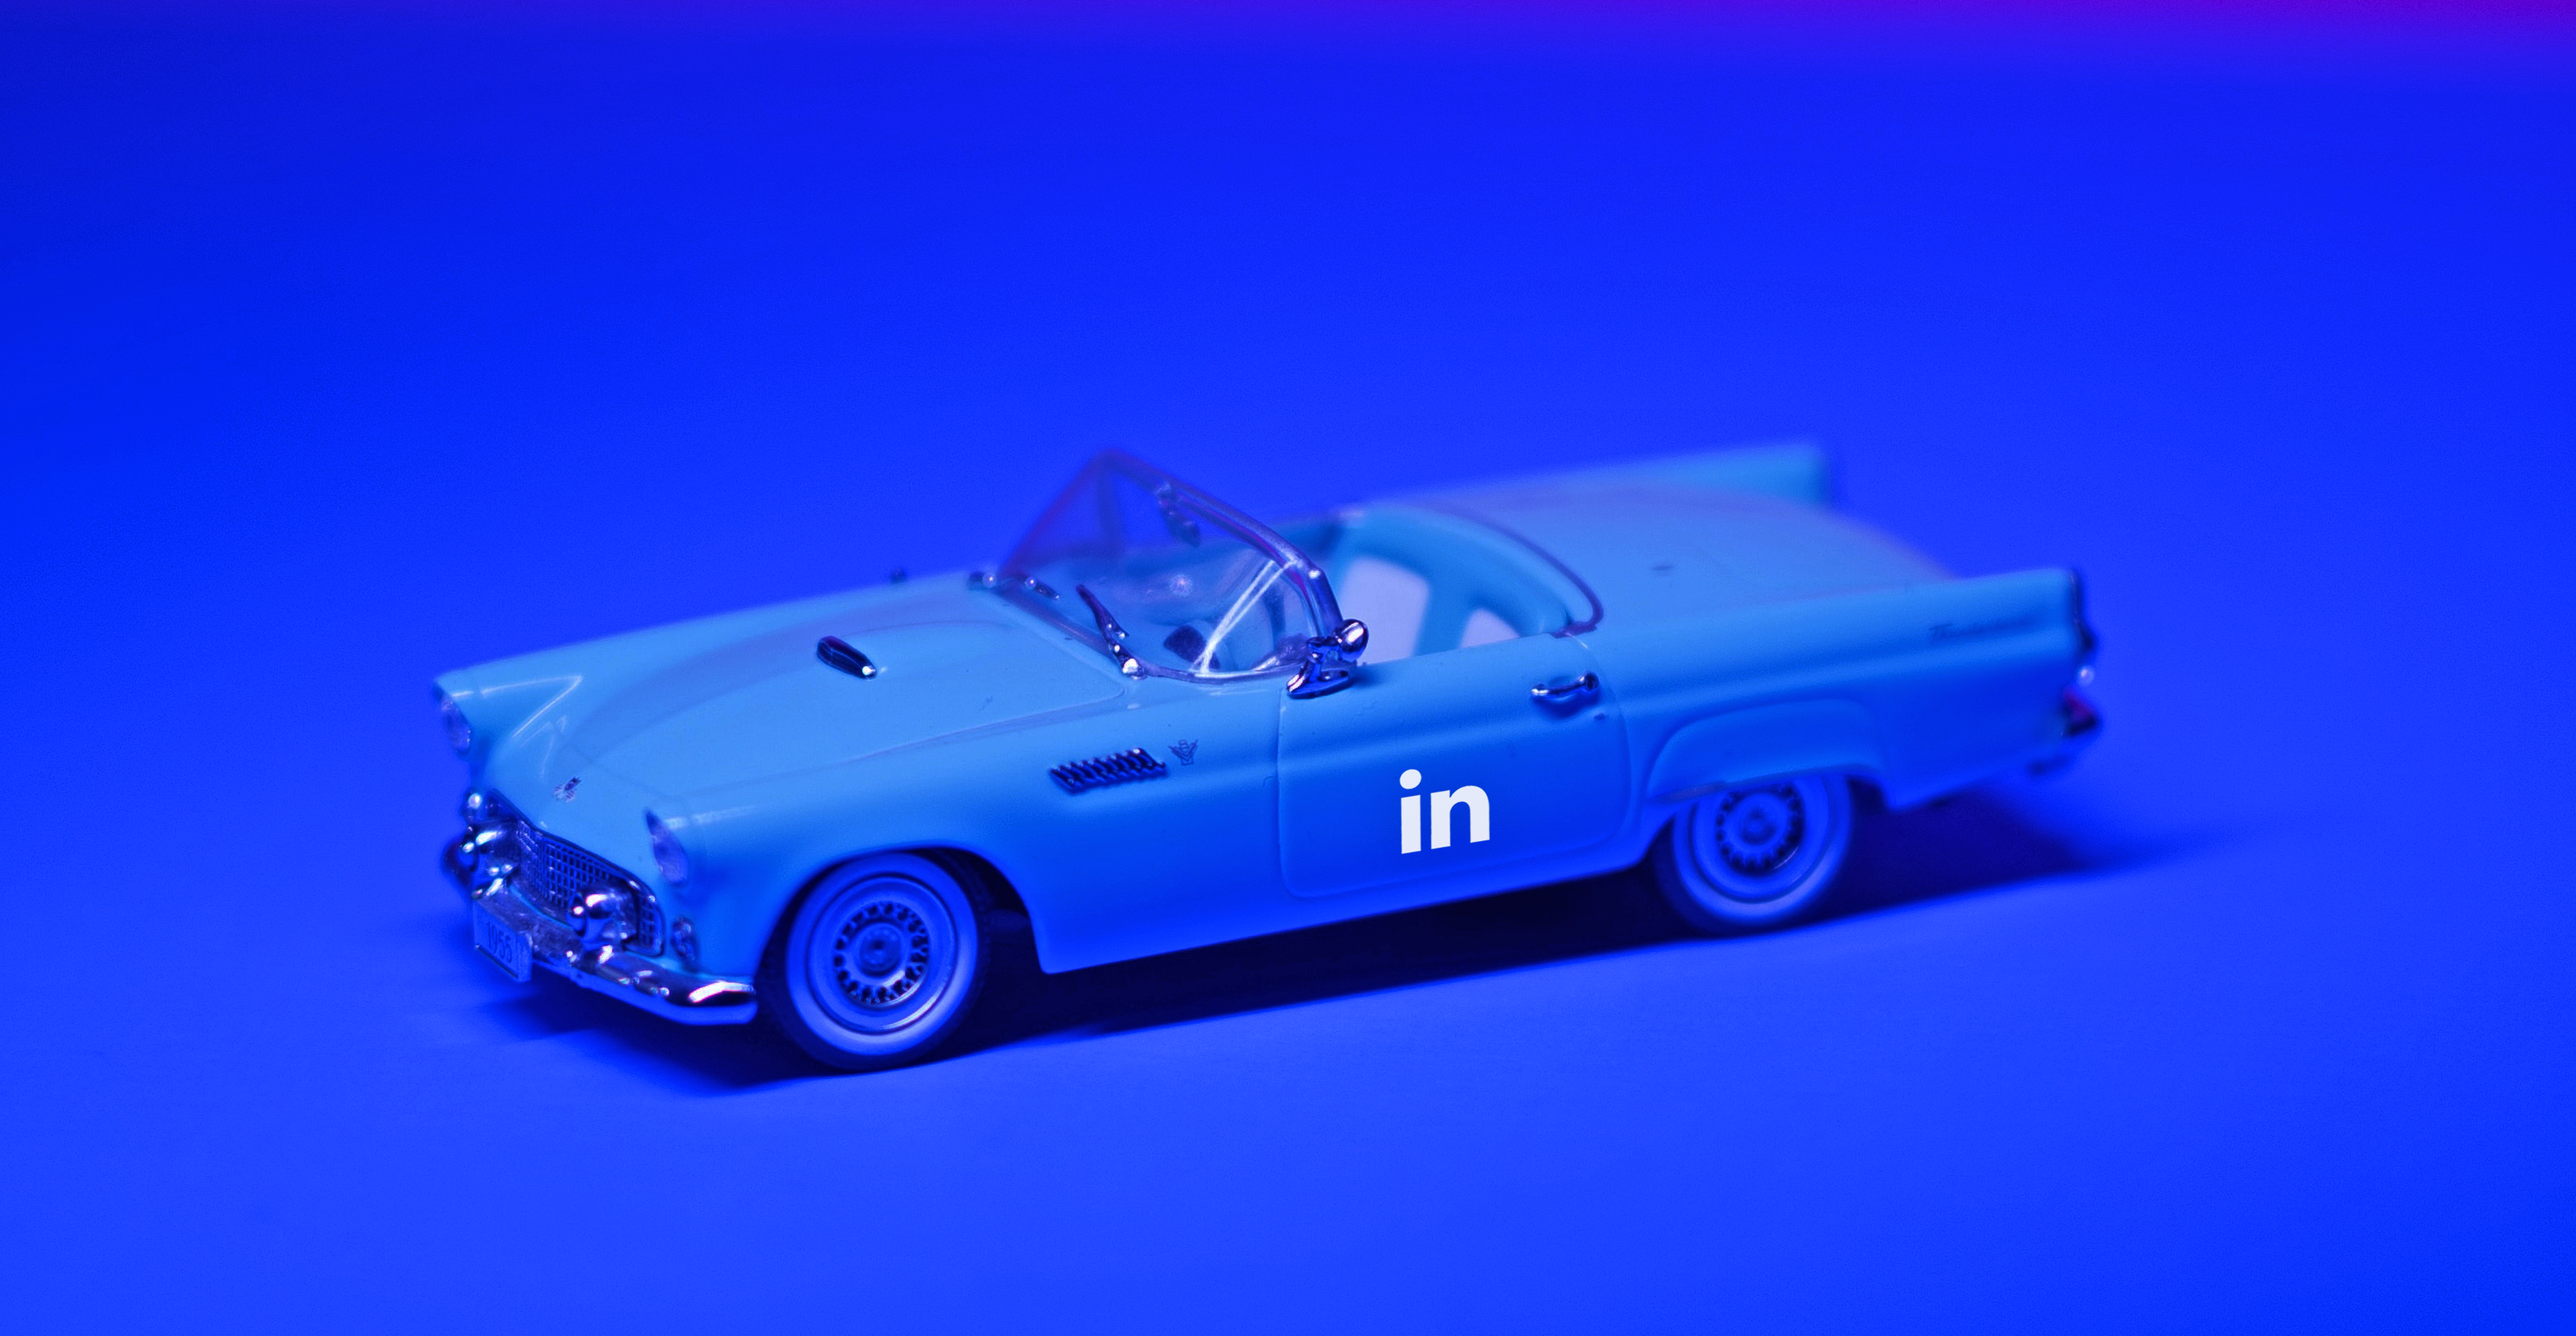 Reaching More Customers & Boosting Your Brand with LinkedIn